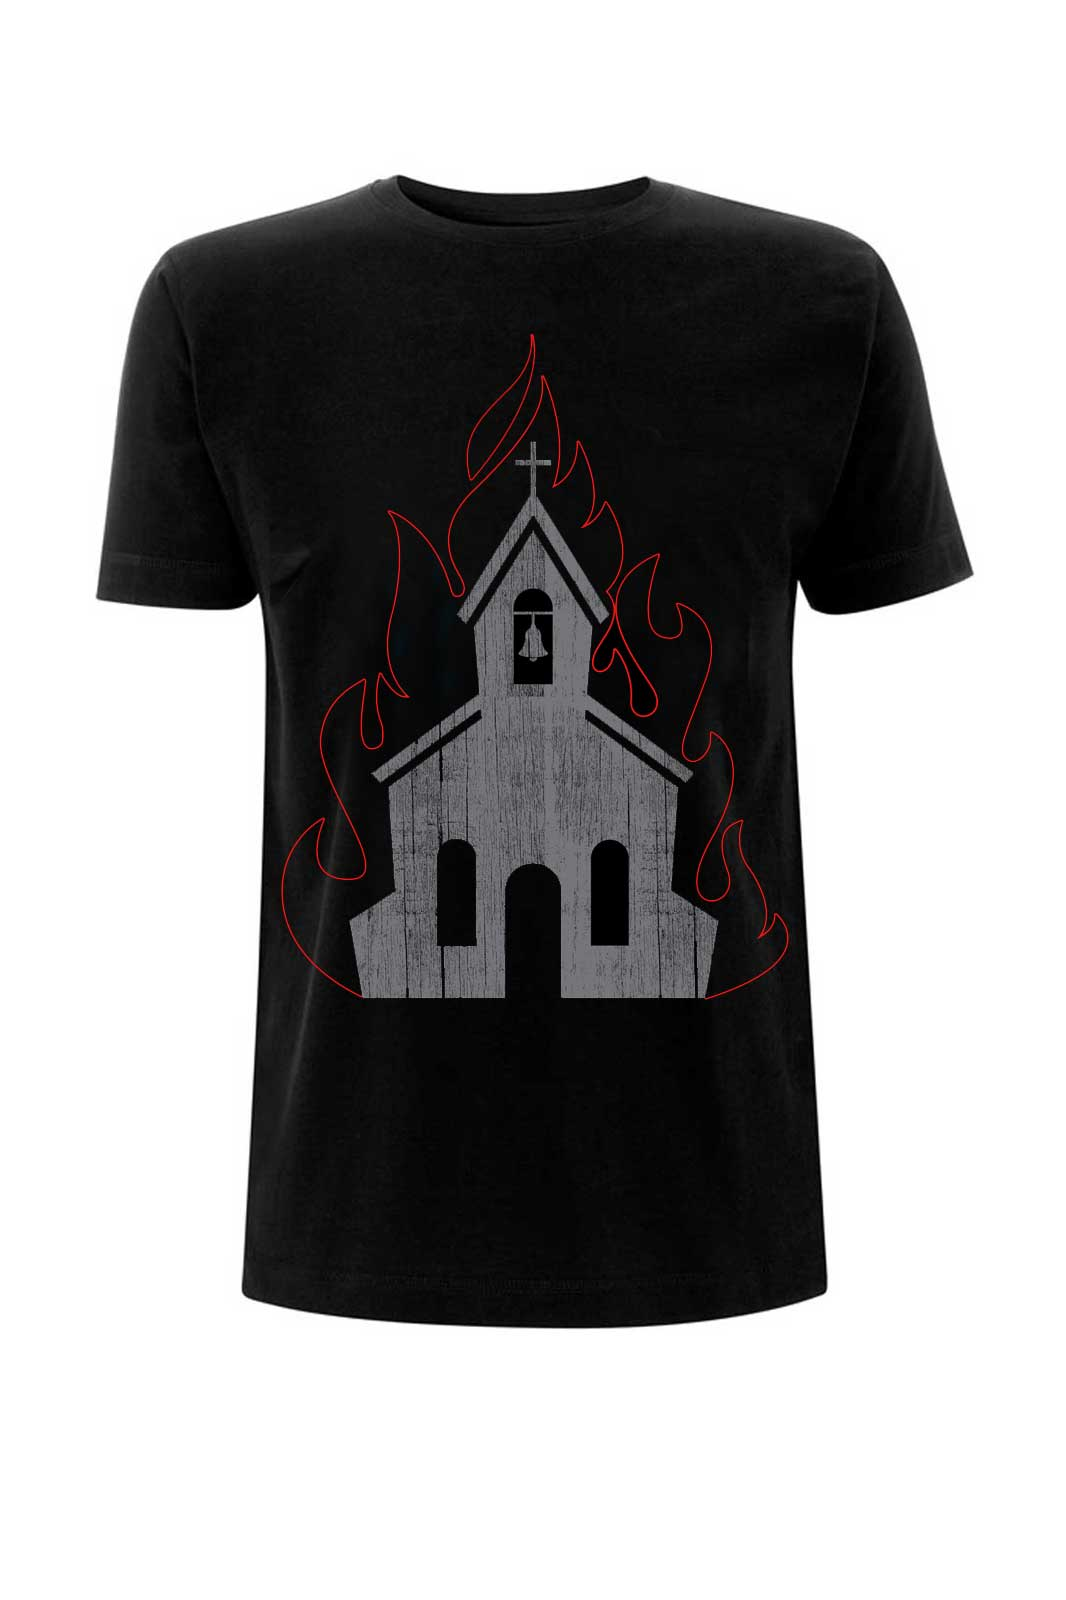 Burning Church Tee